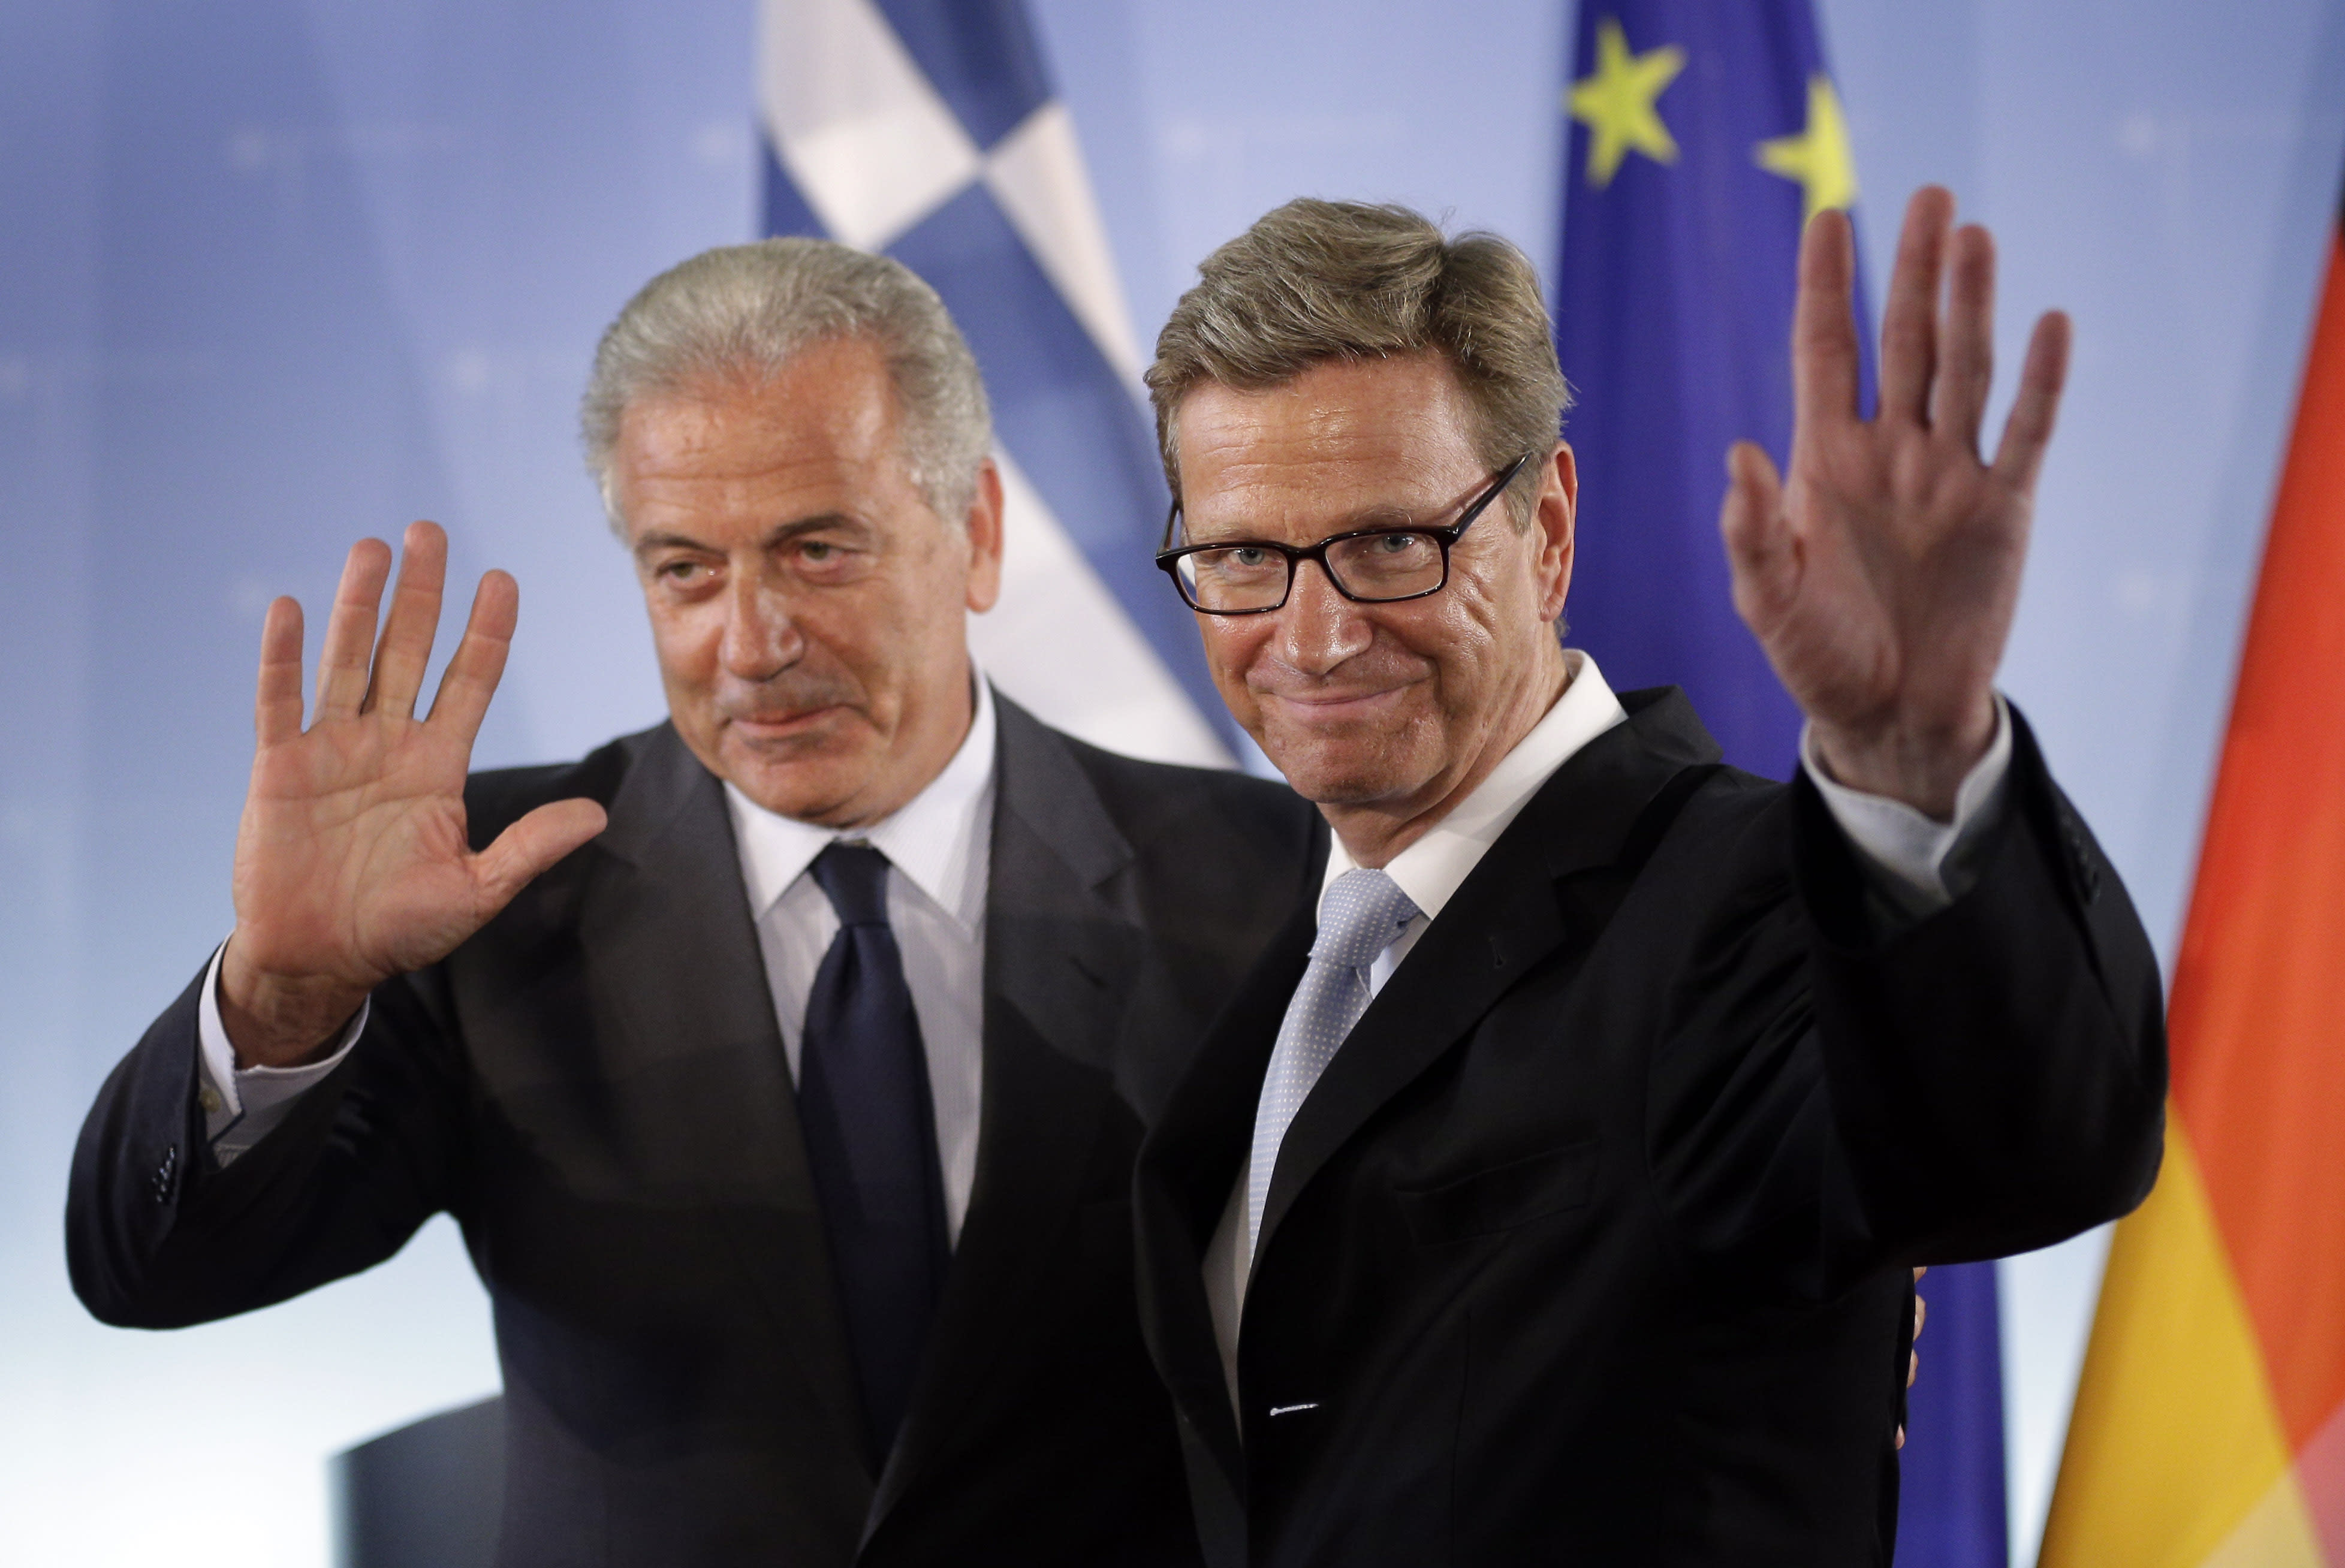 German Foreign Minister Guido Westerwelle right, and his counterpart from Greece, Dimitris Avramopulos, left, wave farewell after a joint press conference as part of a meeting at the foreign office in Berlin, Germany, Monday, Aug. 20, 2012. (AP Photo/Michael Sohn)